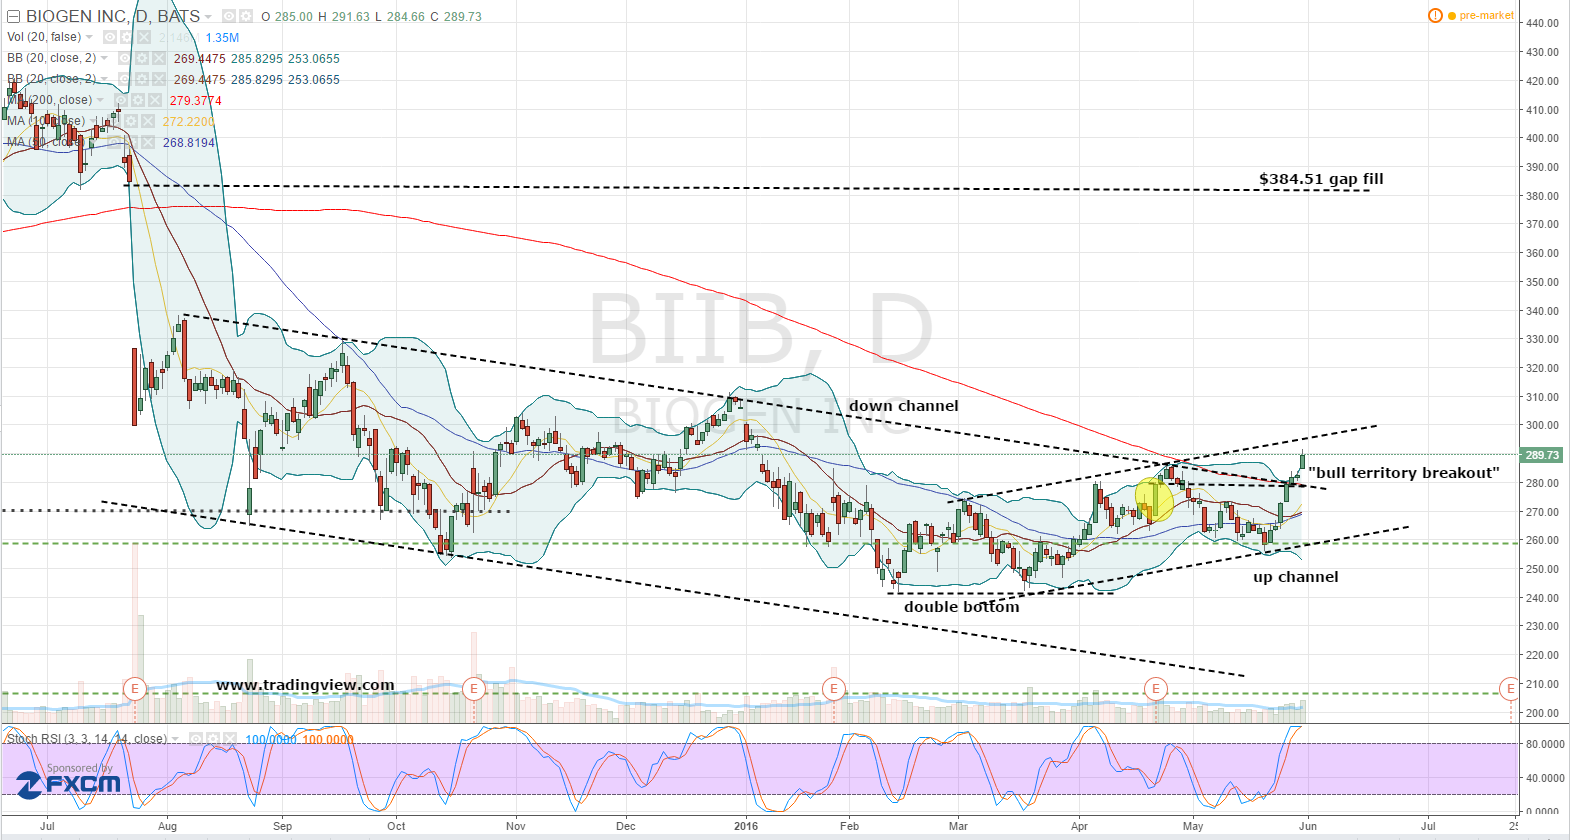 Biib stock options